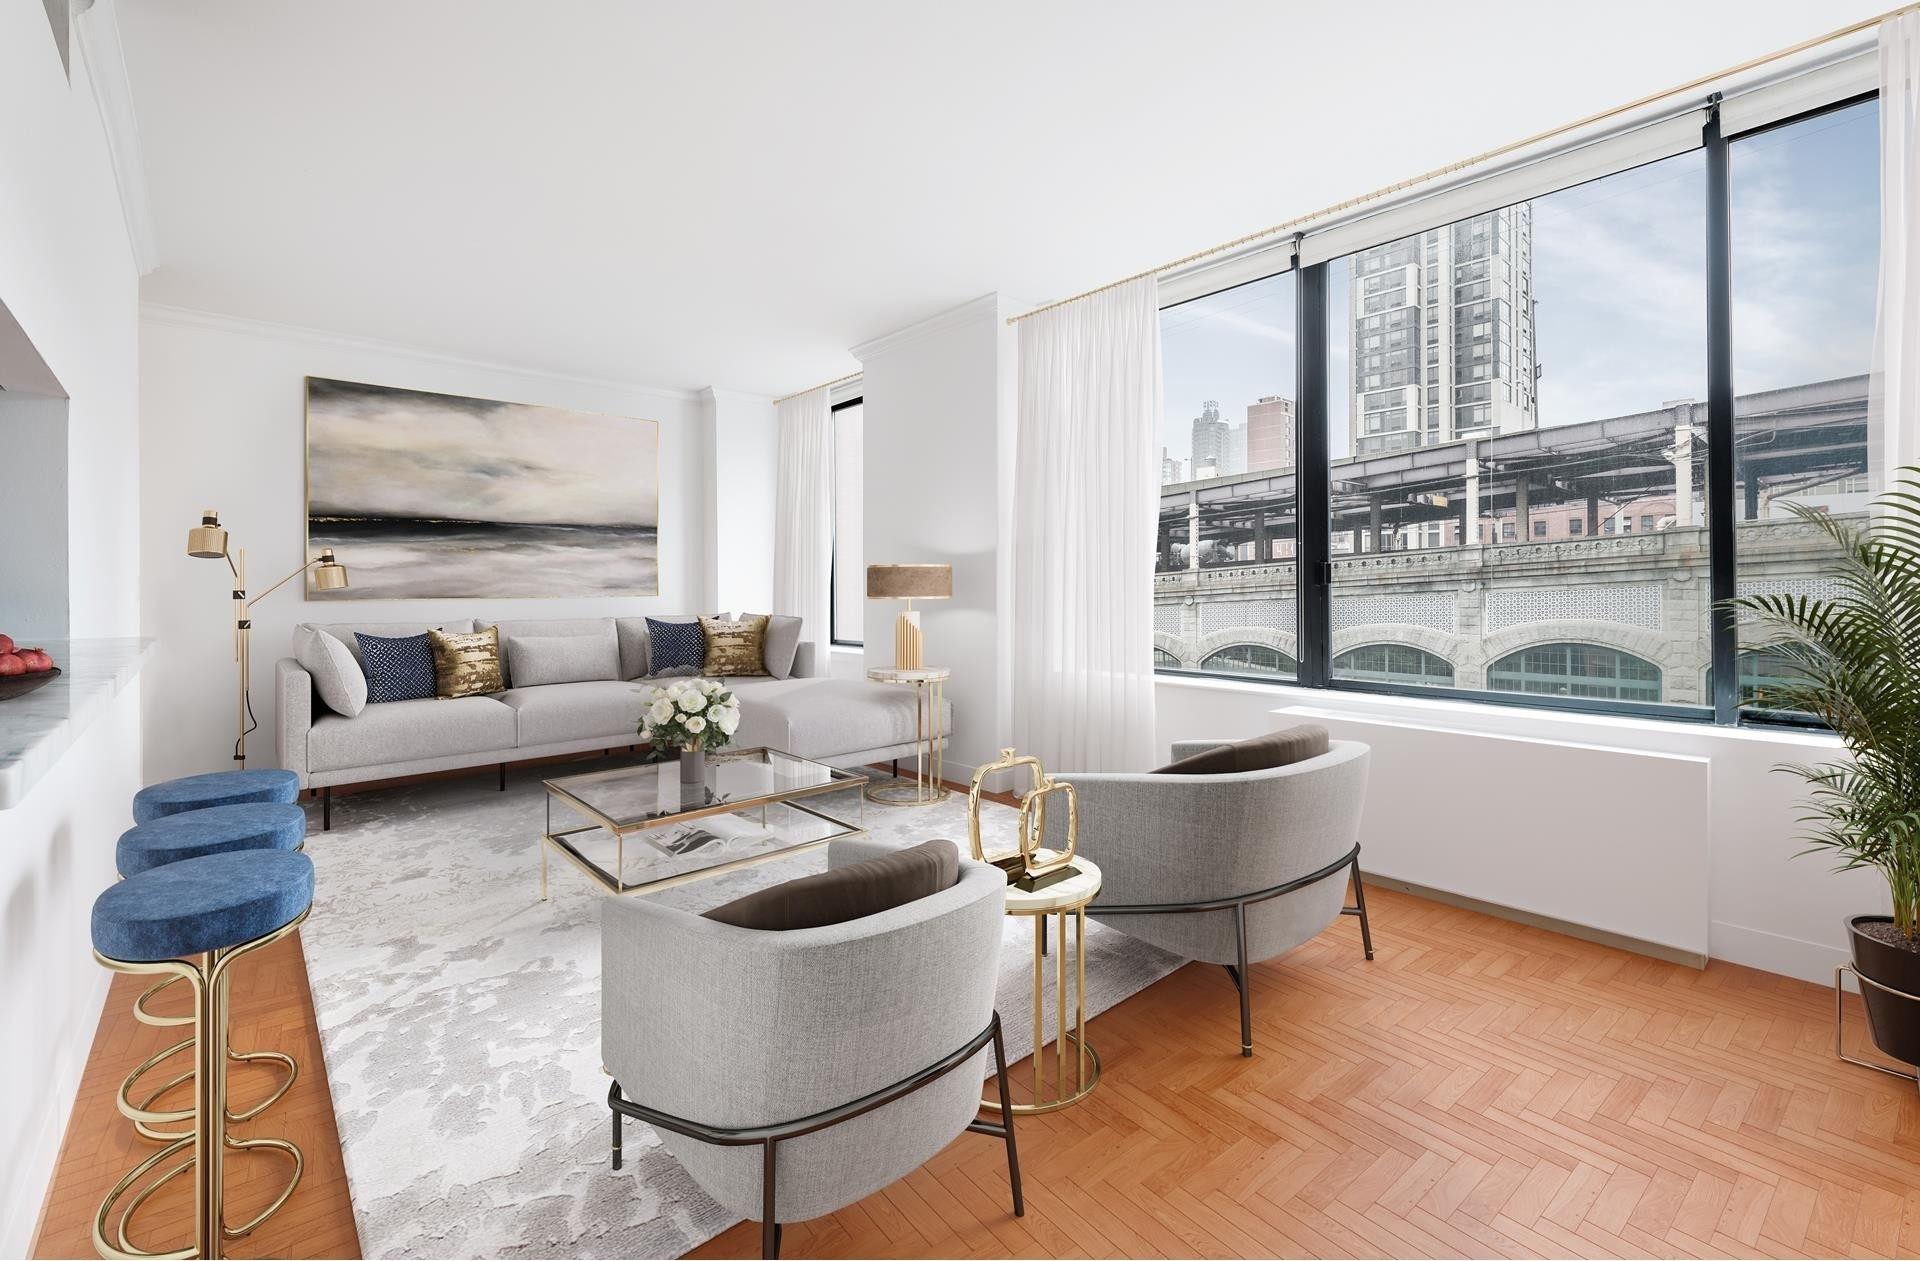 Co-op / Condo for Sale at GRAND SUTTON, 418 East 59th St, 5C Sutton Place, New York, NY 10022